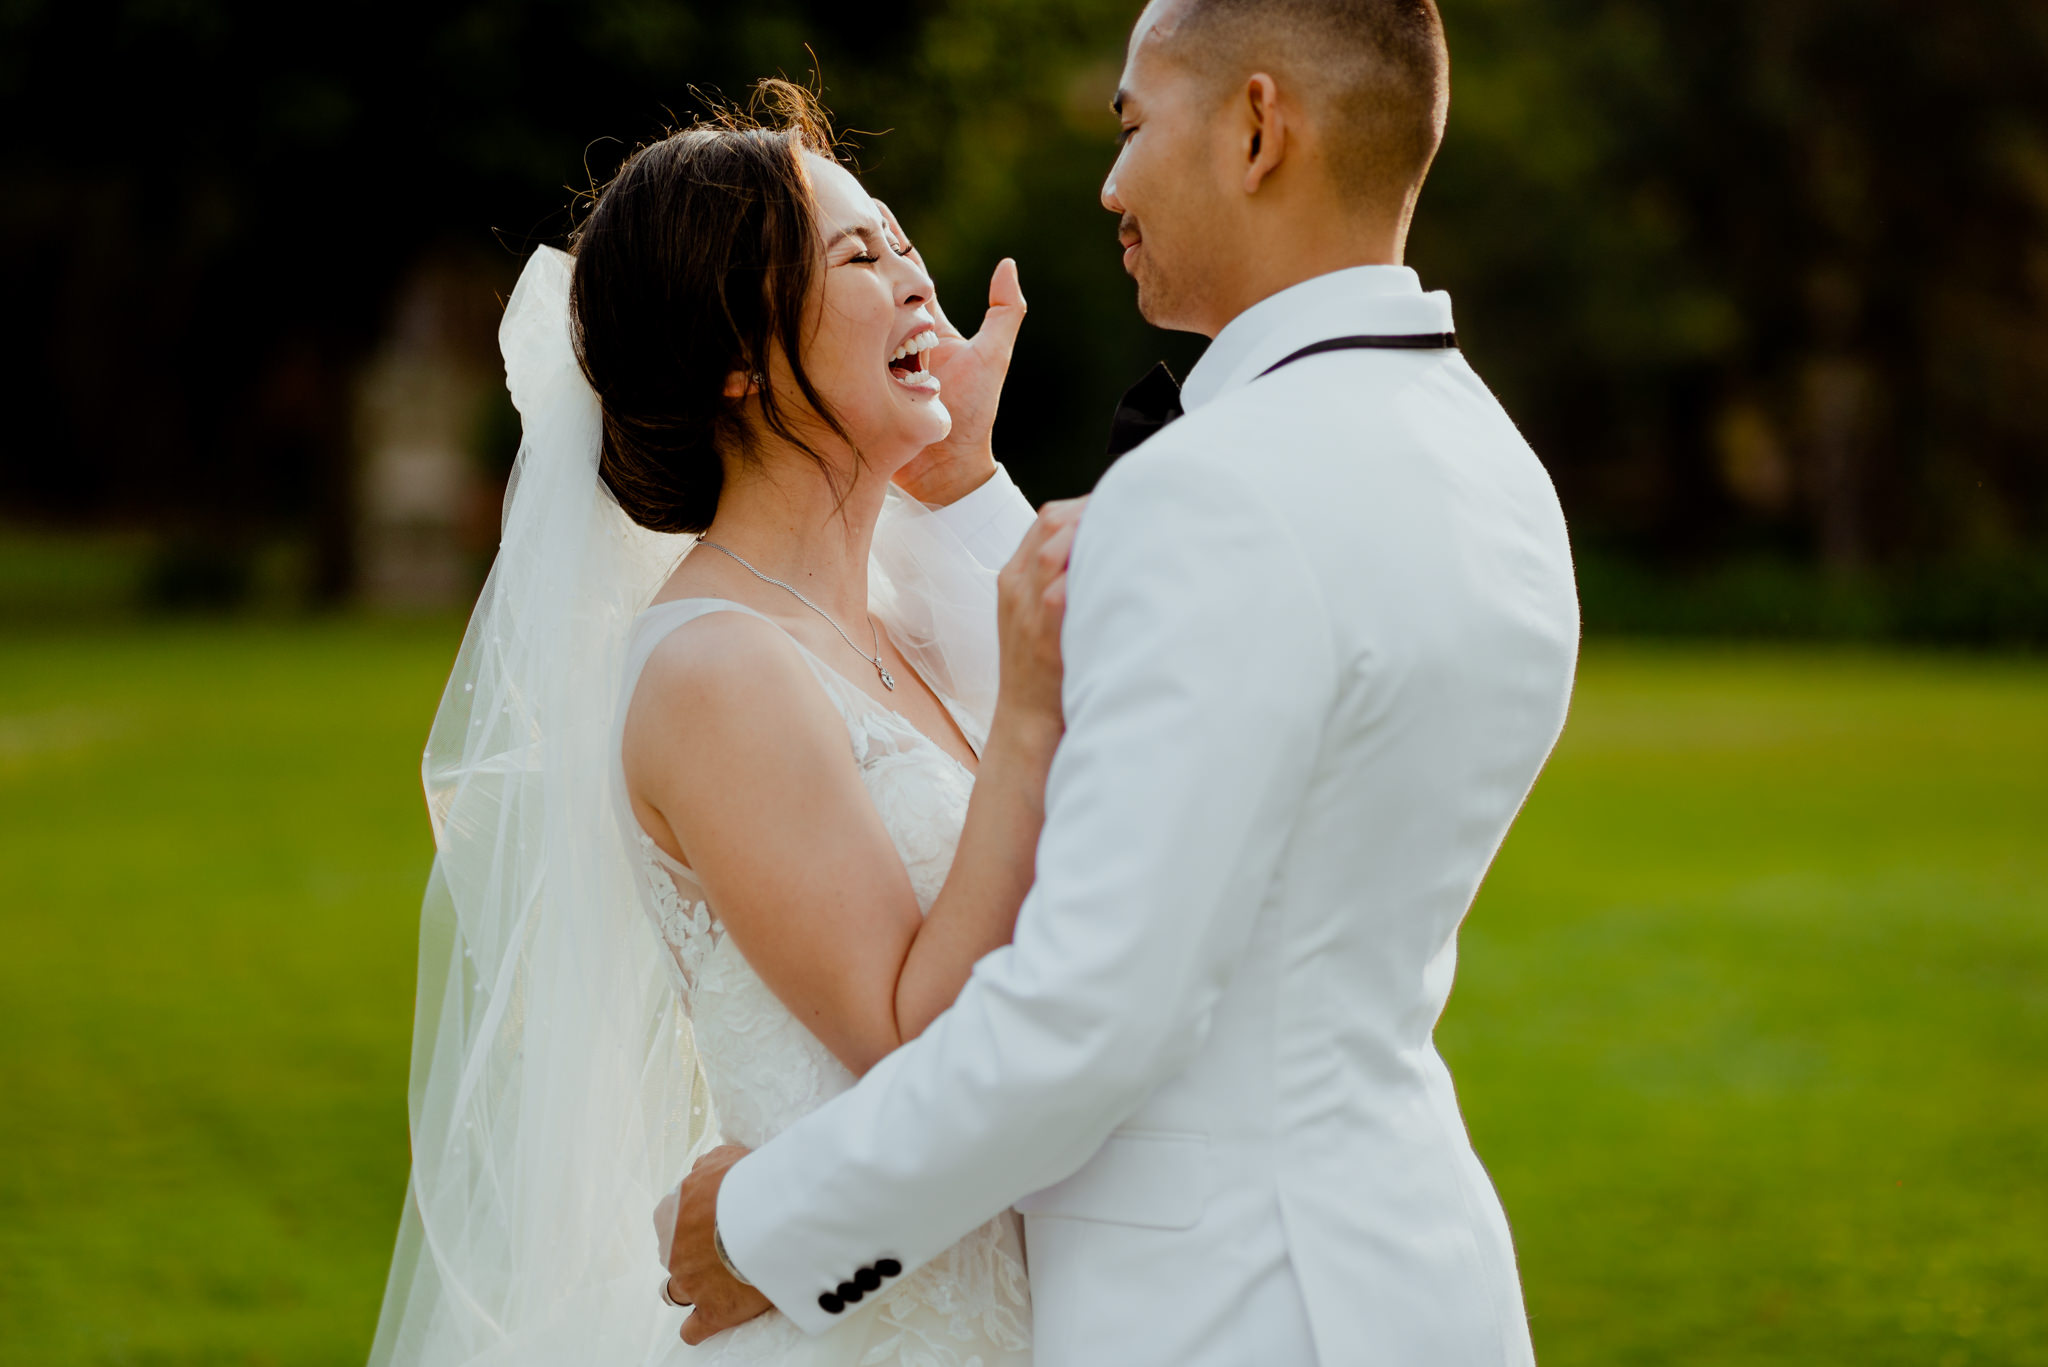 A bride laughs as her husband strokes her cheek